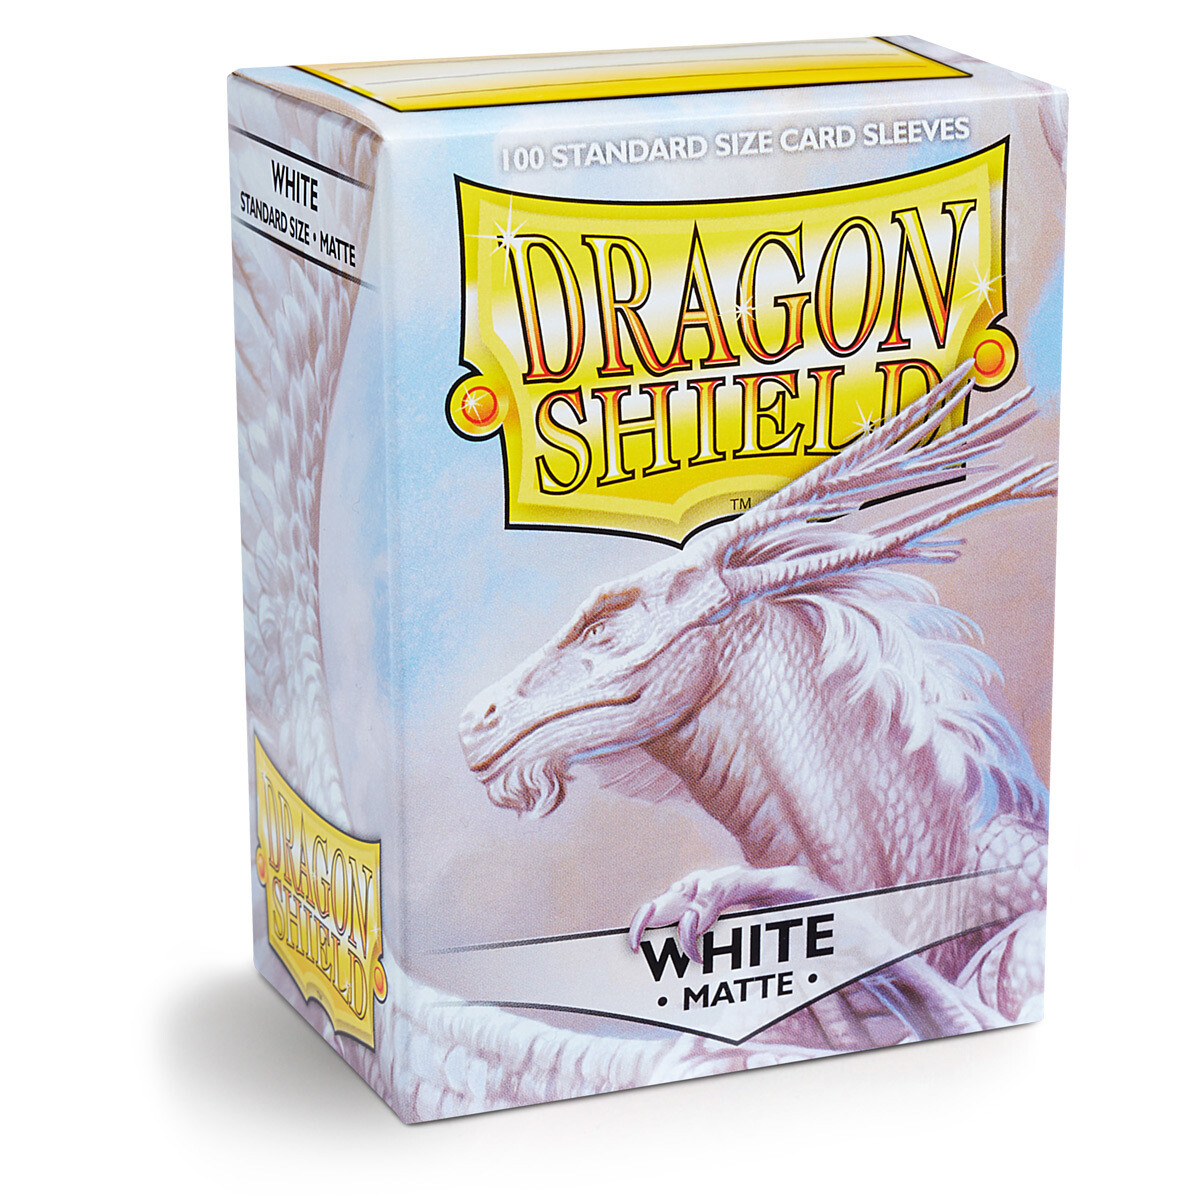 Dragon Shield 100 Sleeves - Matte White